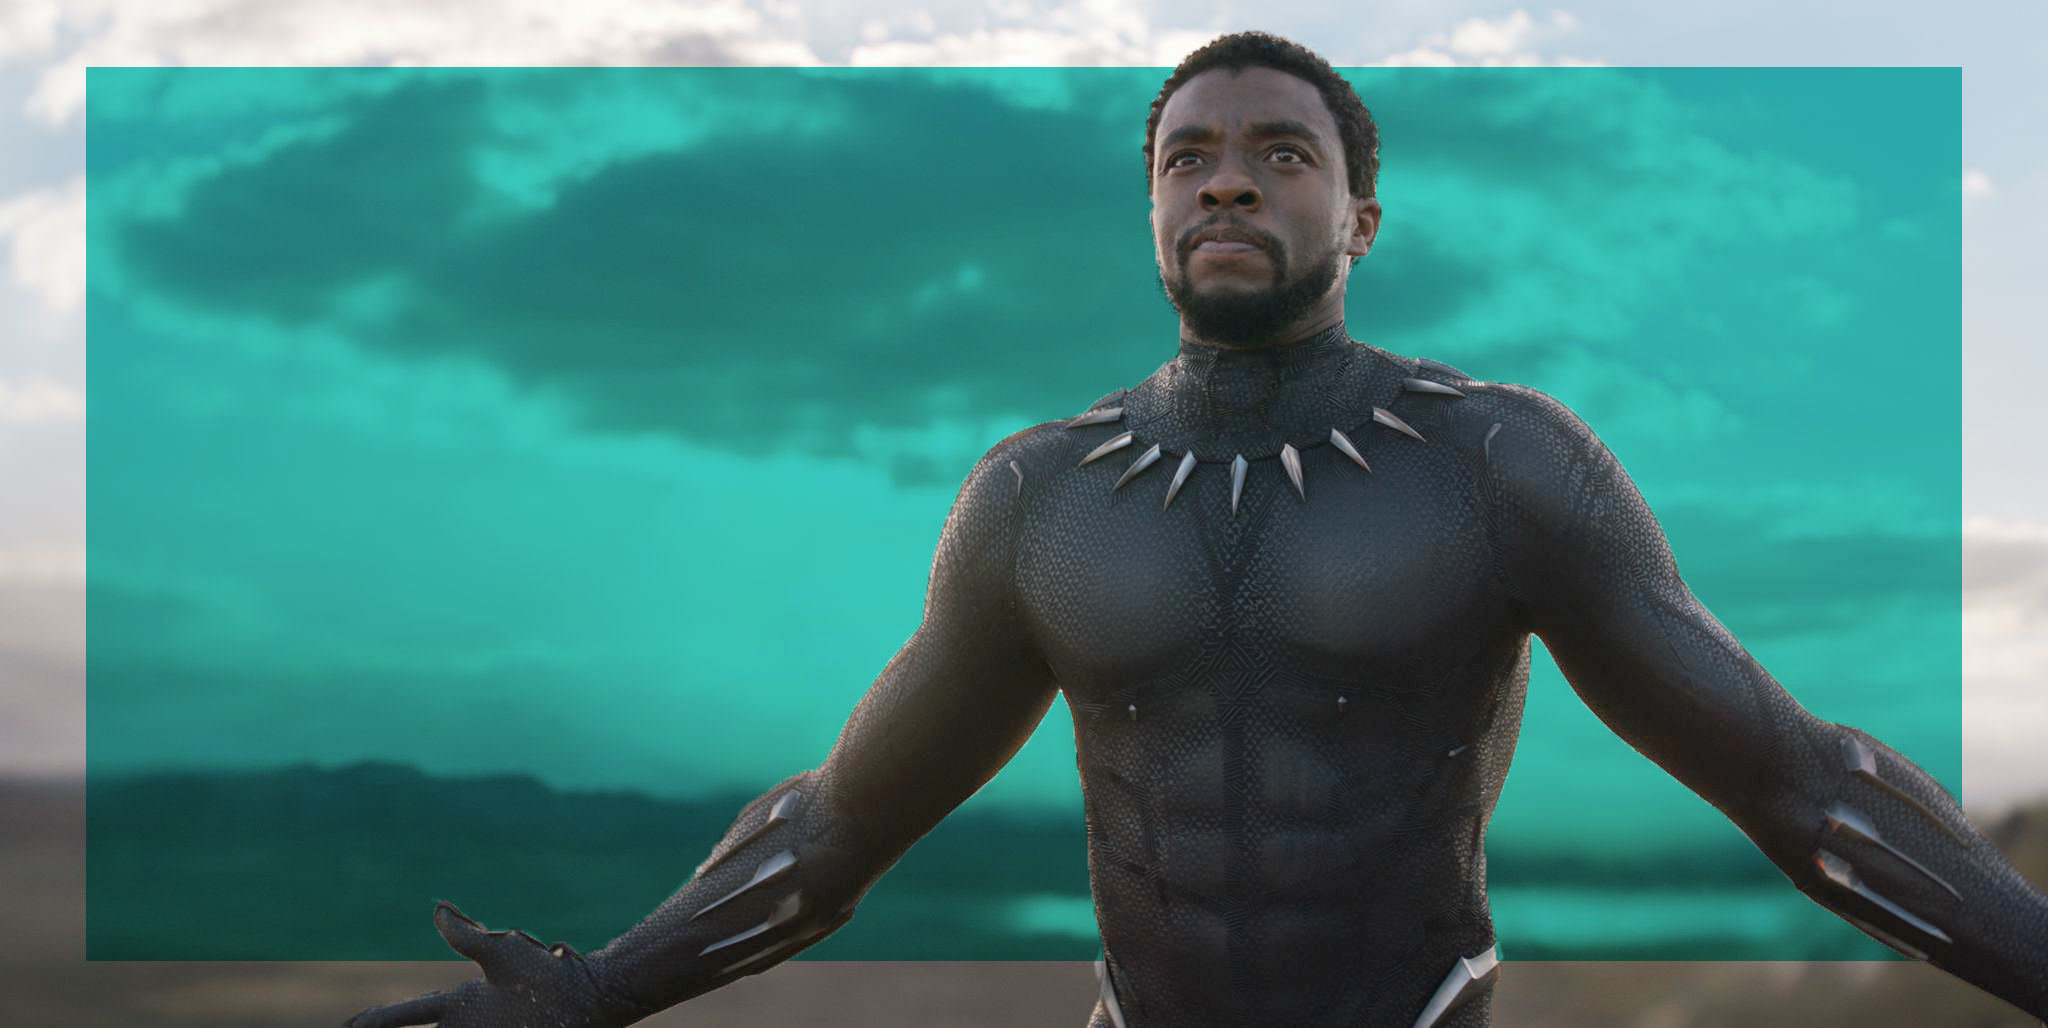 Black Panther Halloween Costumes 2020 Are Black Panther Halloween Costumes OK?   Offensive Kid Halloween